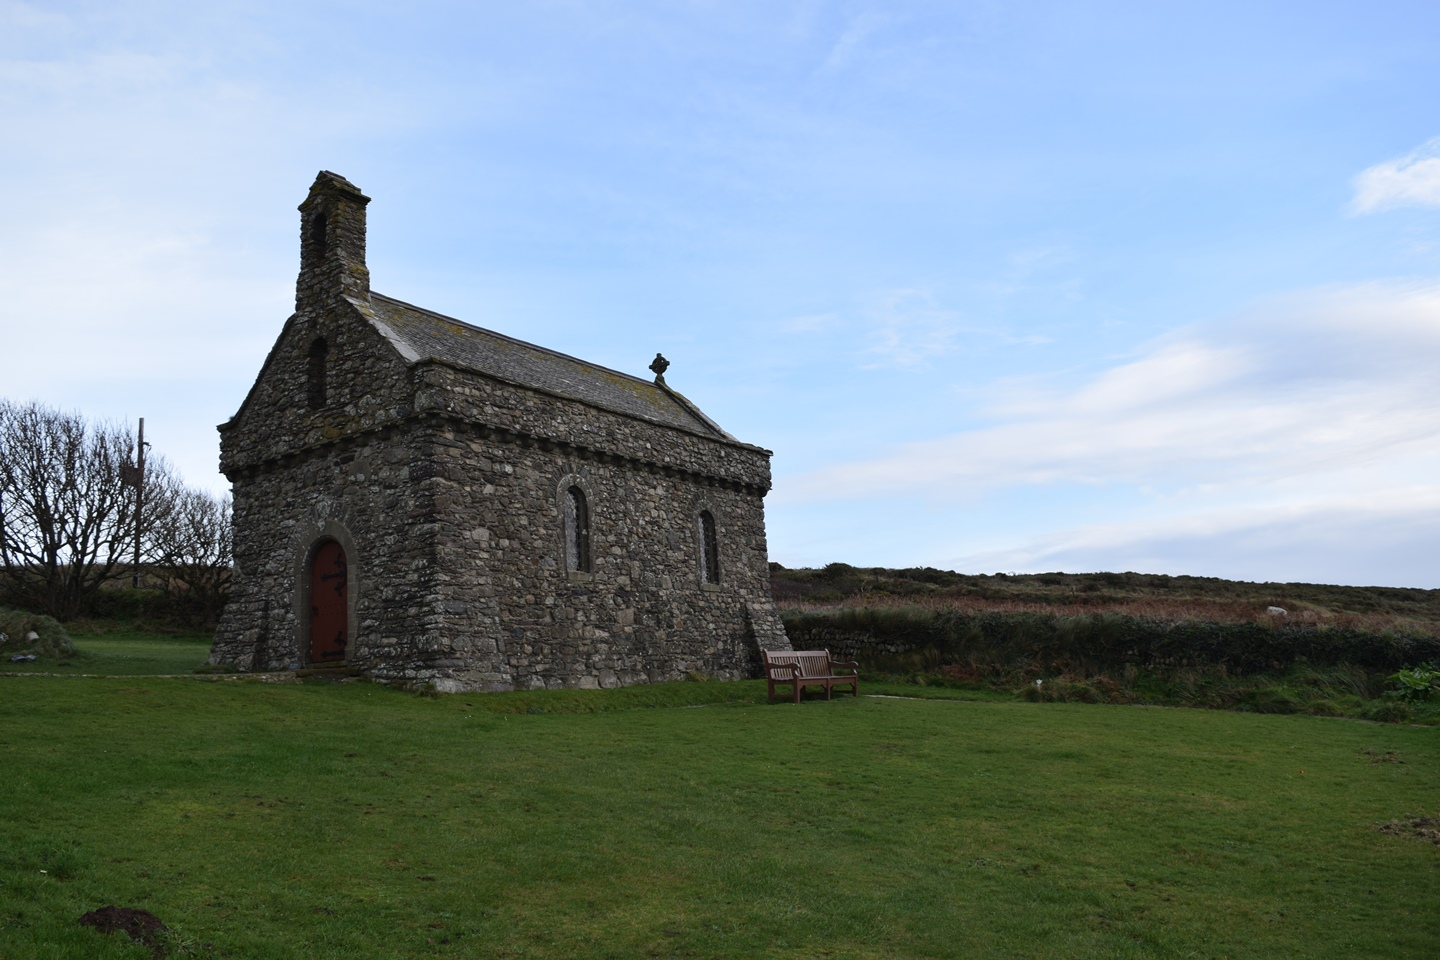 An ancient church on the Welsh coast